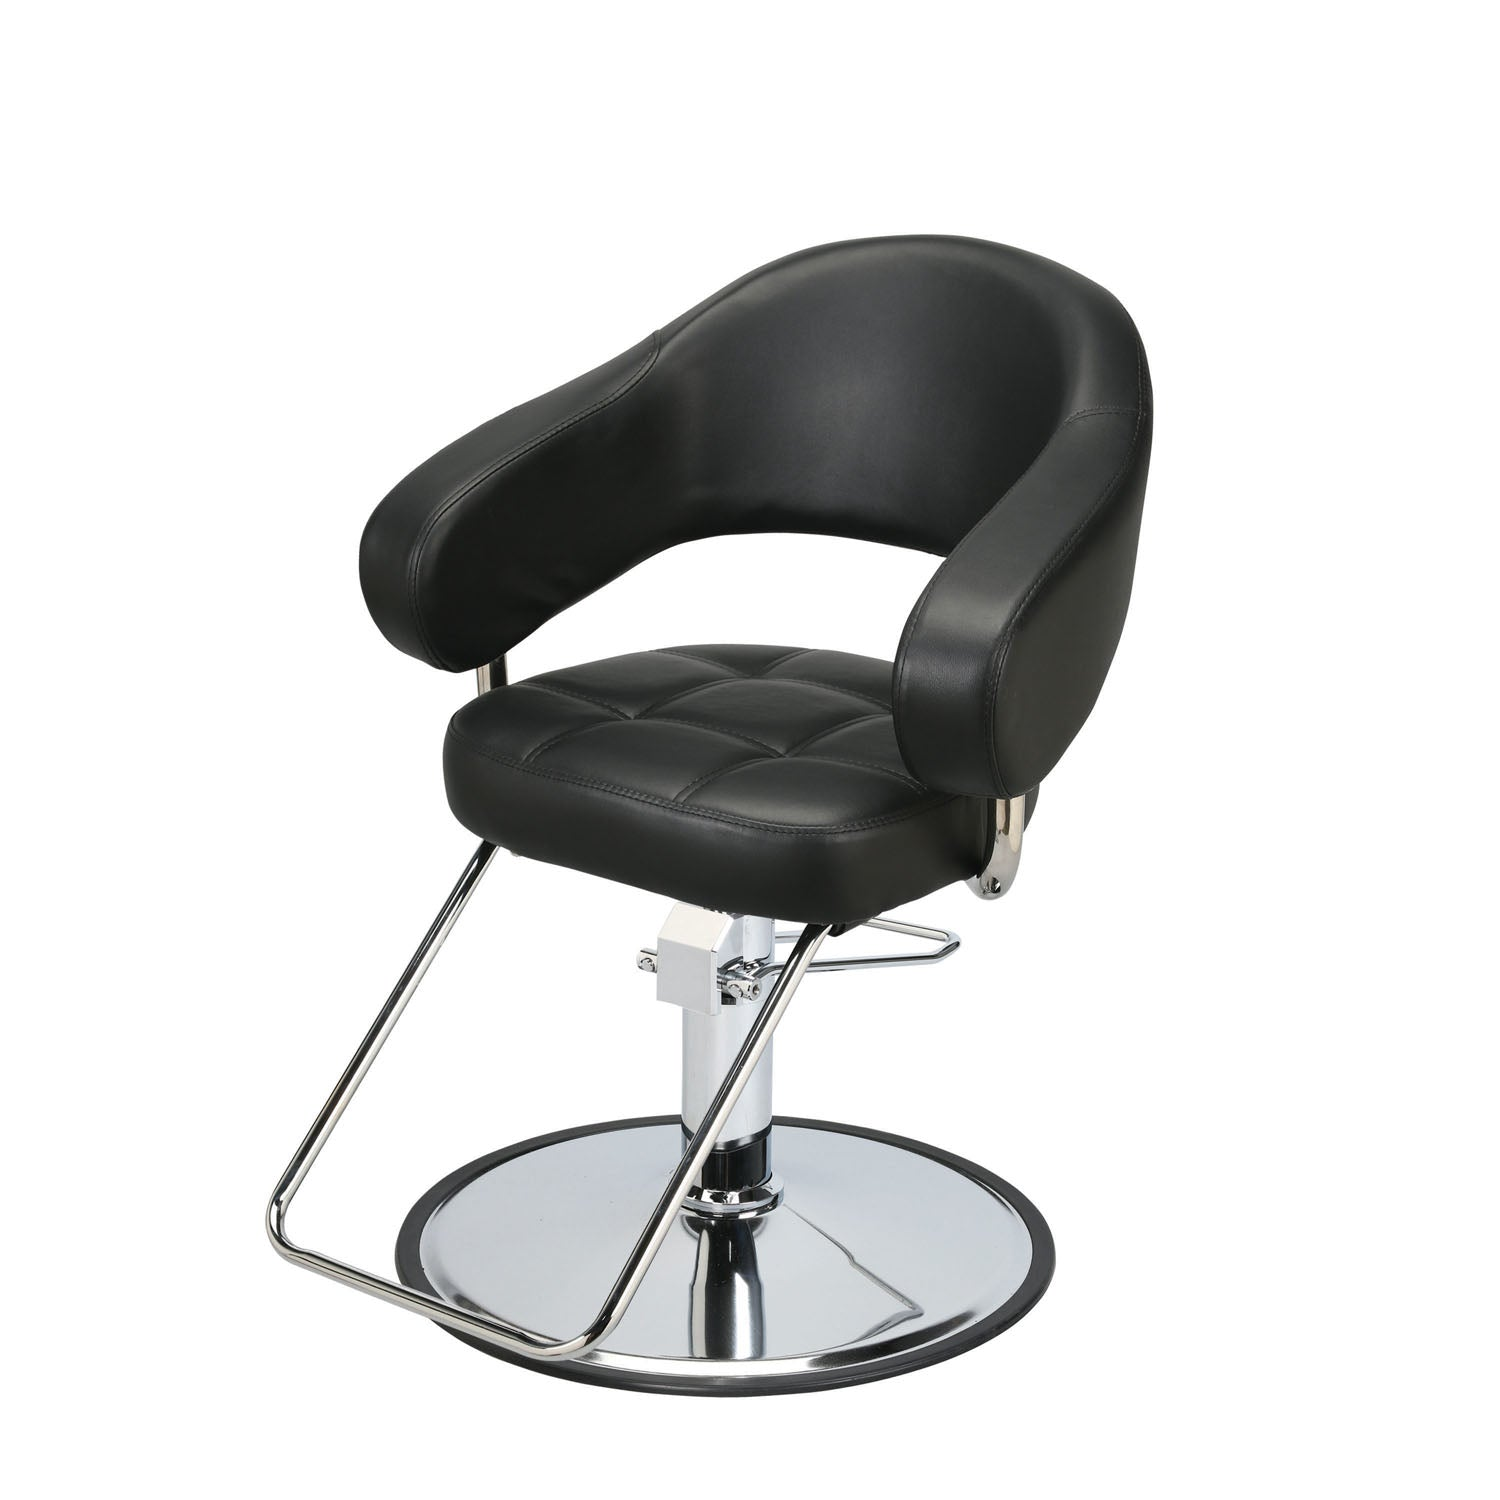 Prossi Salon Styling Chair, Custom Color